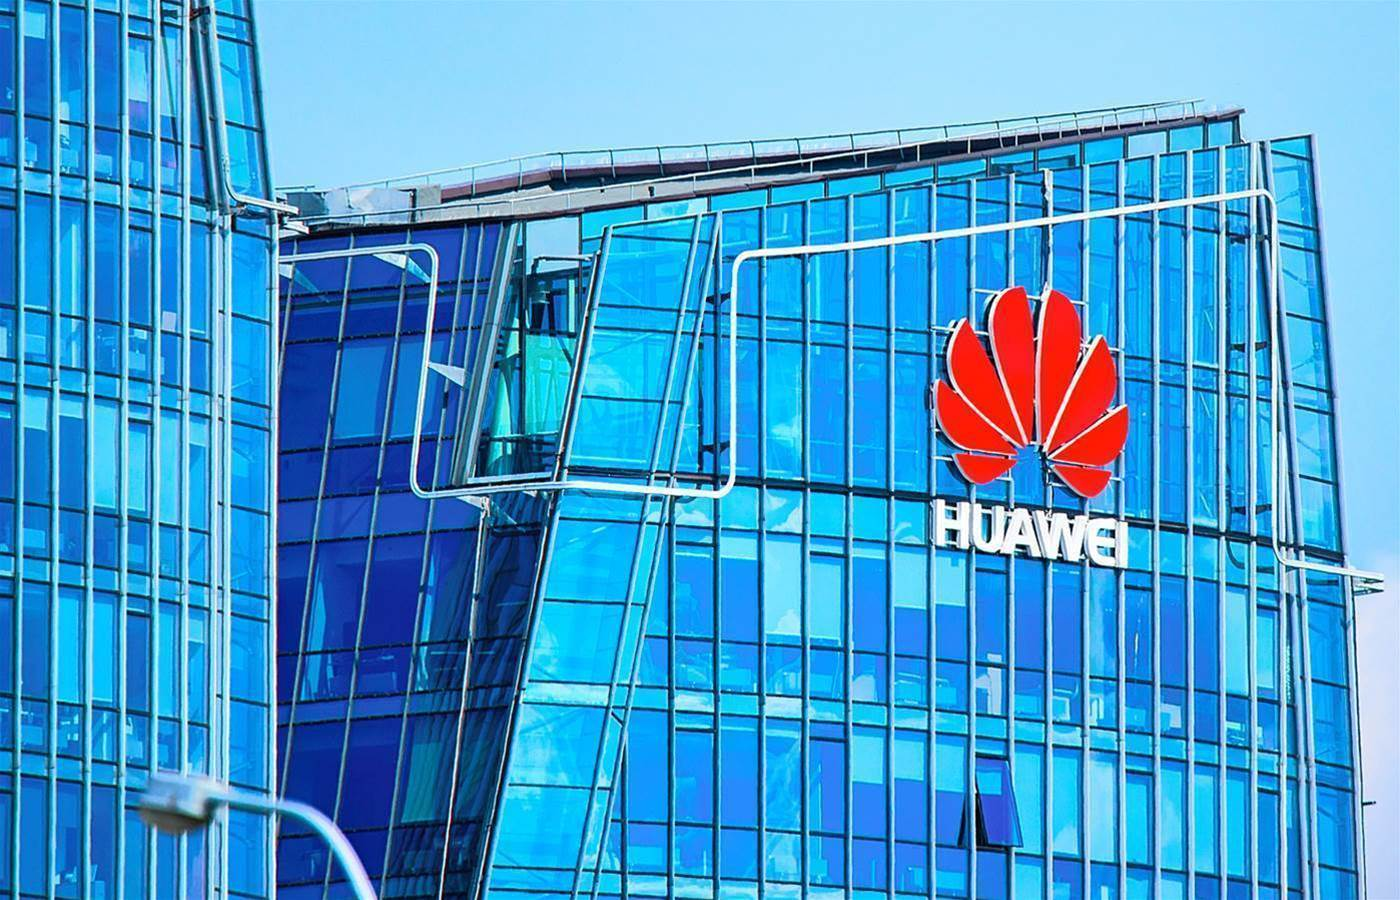 Huawei sacks employee arrested in Poland on spying charges